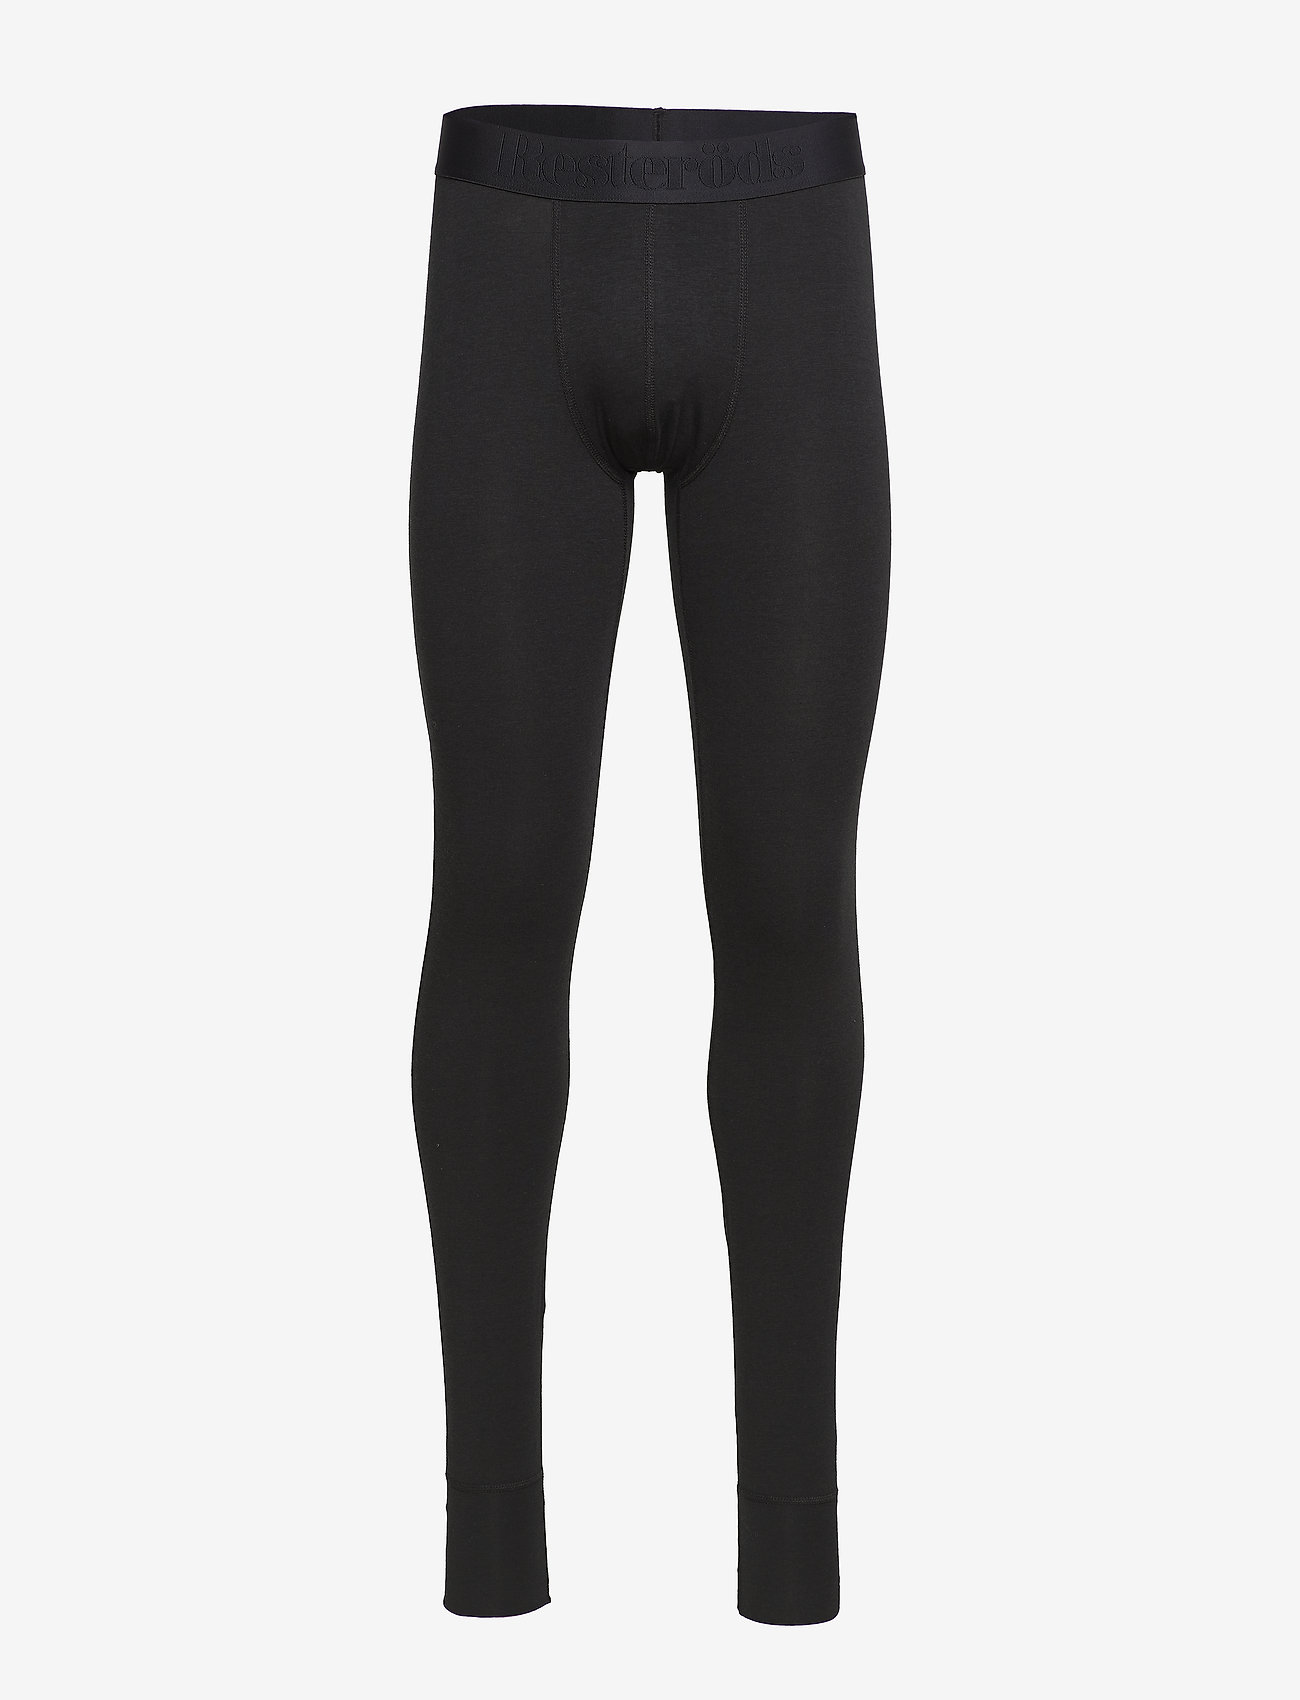 Resteröds - BAMBU Long John - base layer underdeler - black - 0